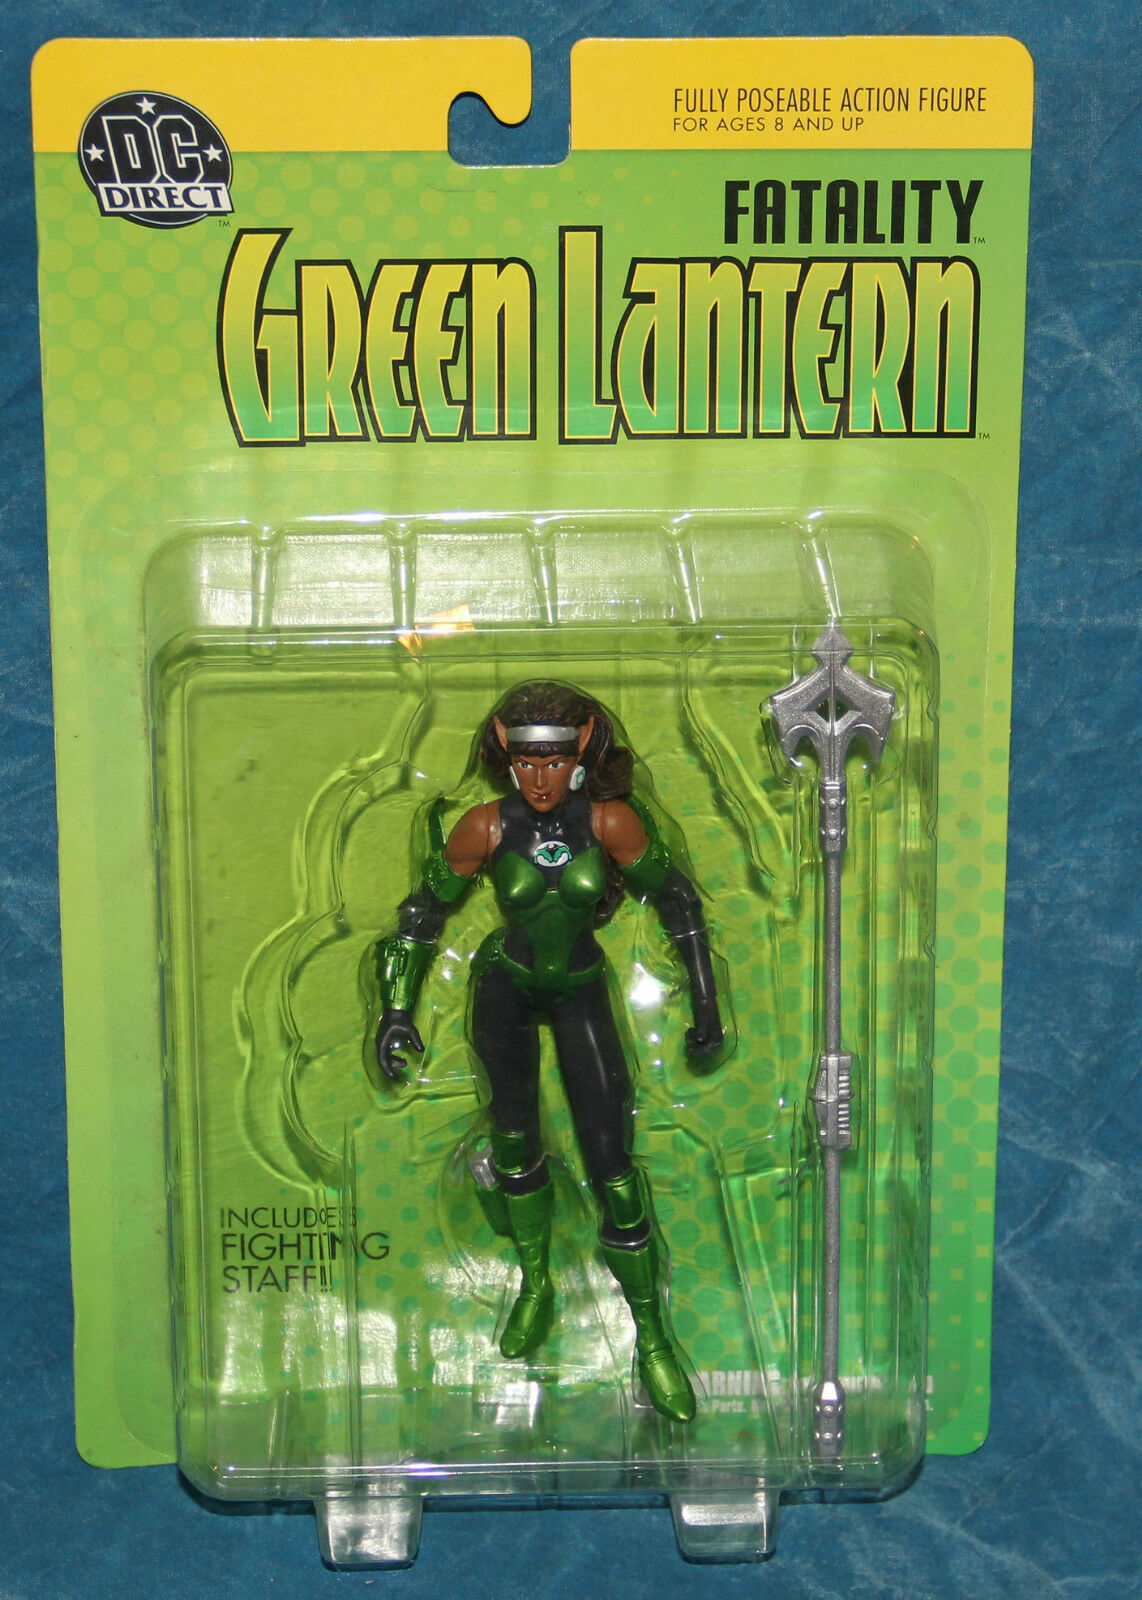 DC Direct Fatality Fatality Fatality Green Lantern Action Figure ad5b76